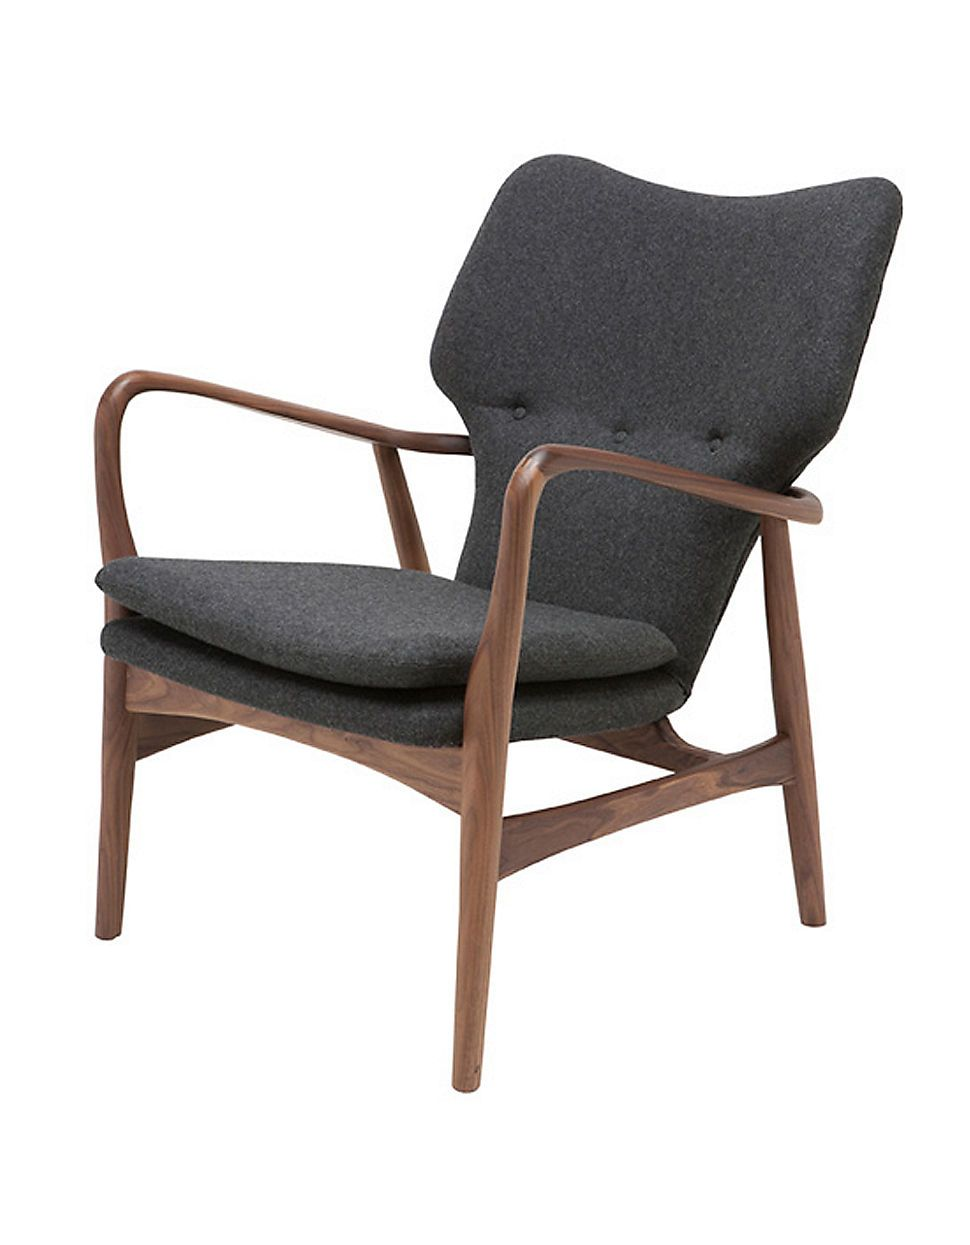 Merveilleux Patrik Accent Chair | Hudsonu0027s Bay. The Company Is Nuevo, Located In  Ontario, Www.nuevoliving.com